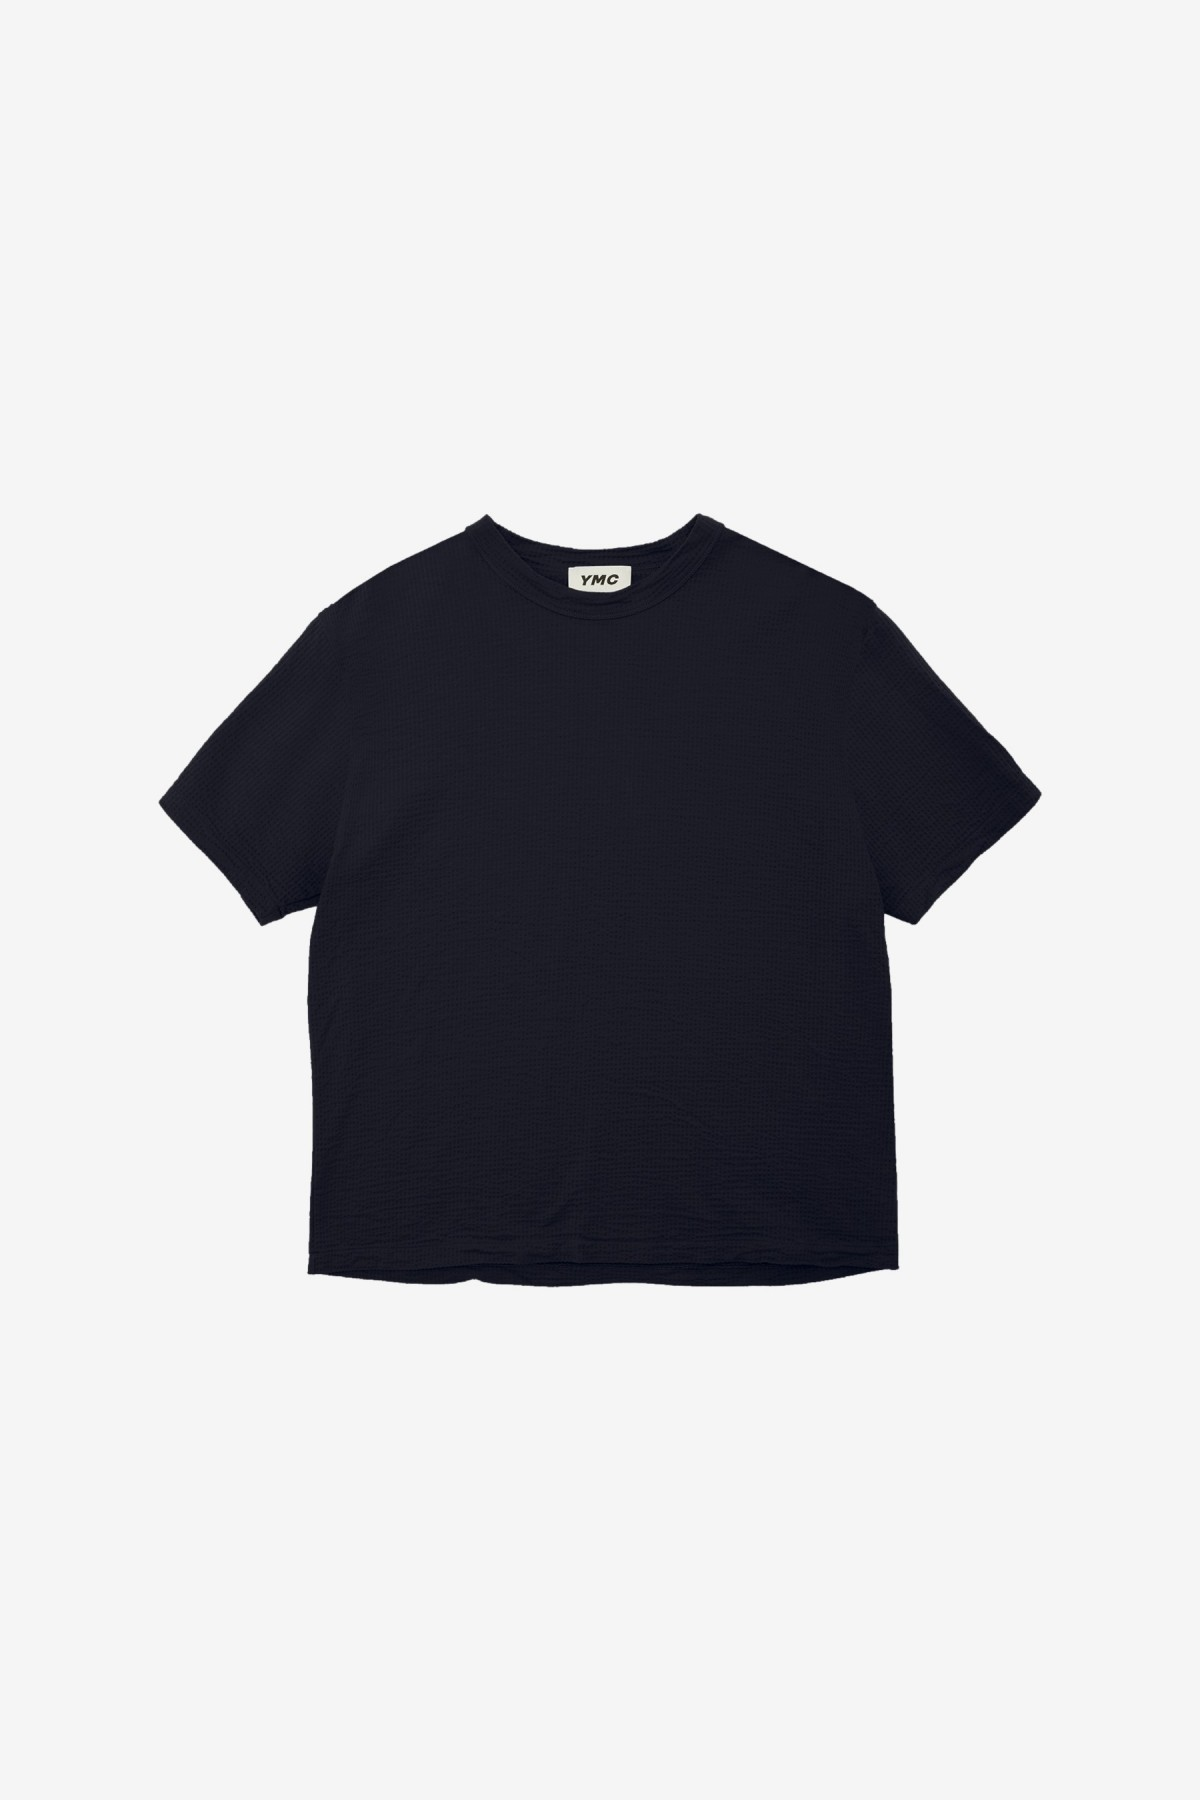 YMC You Must Create Triple S/S T Shirt in Navy